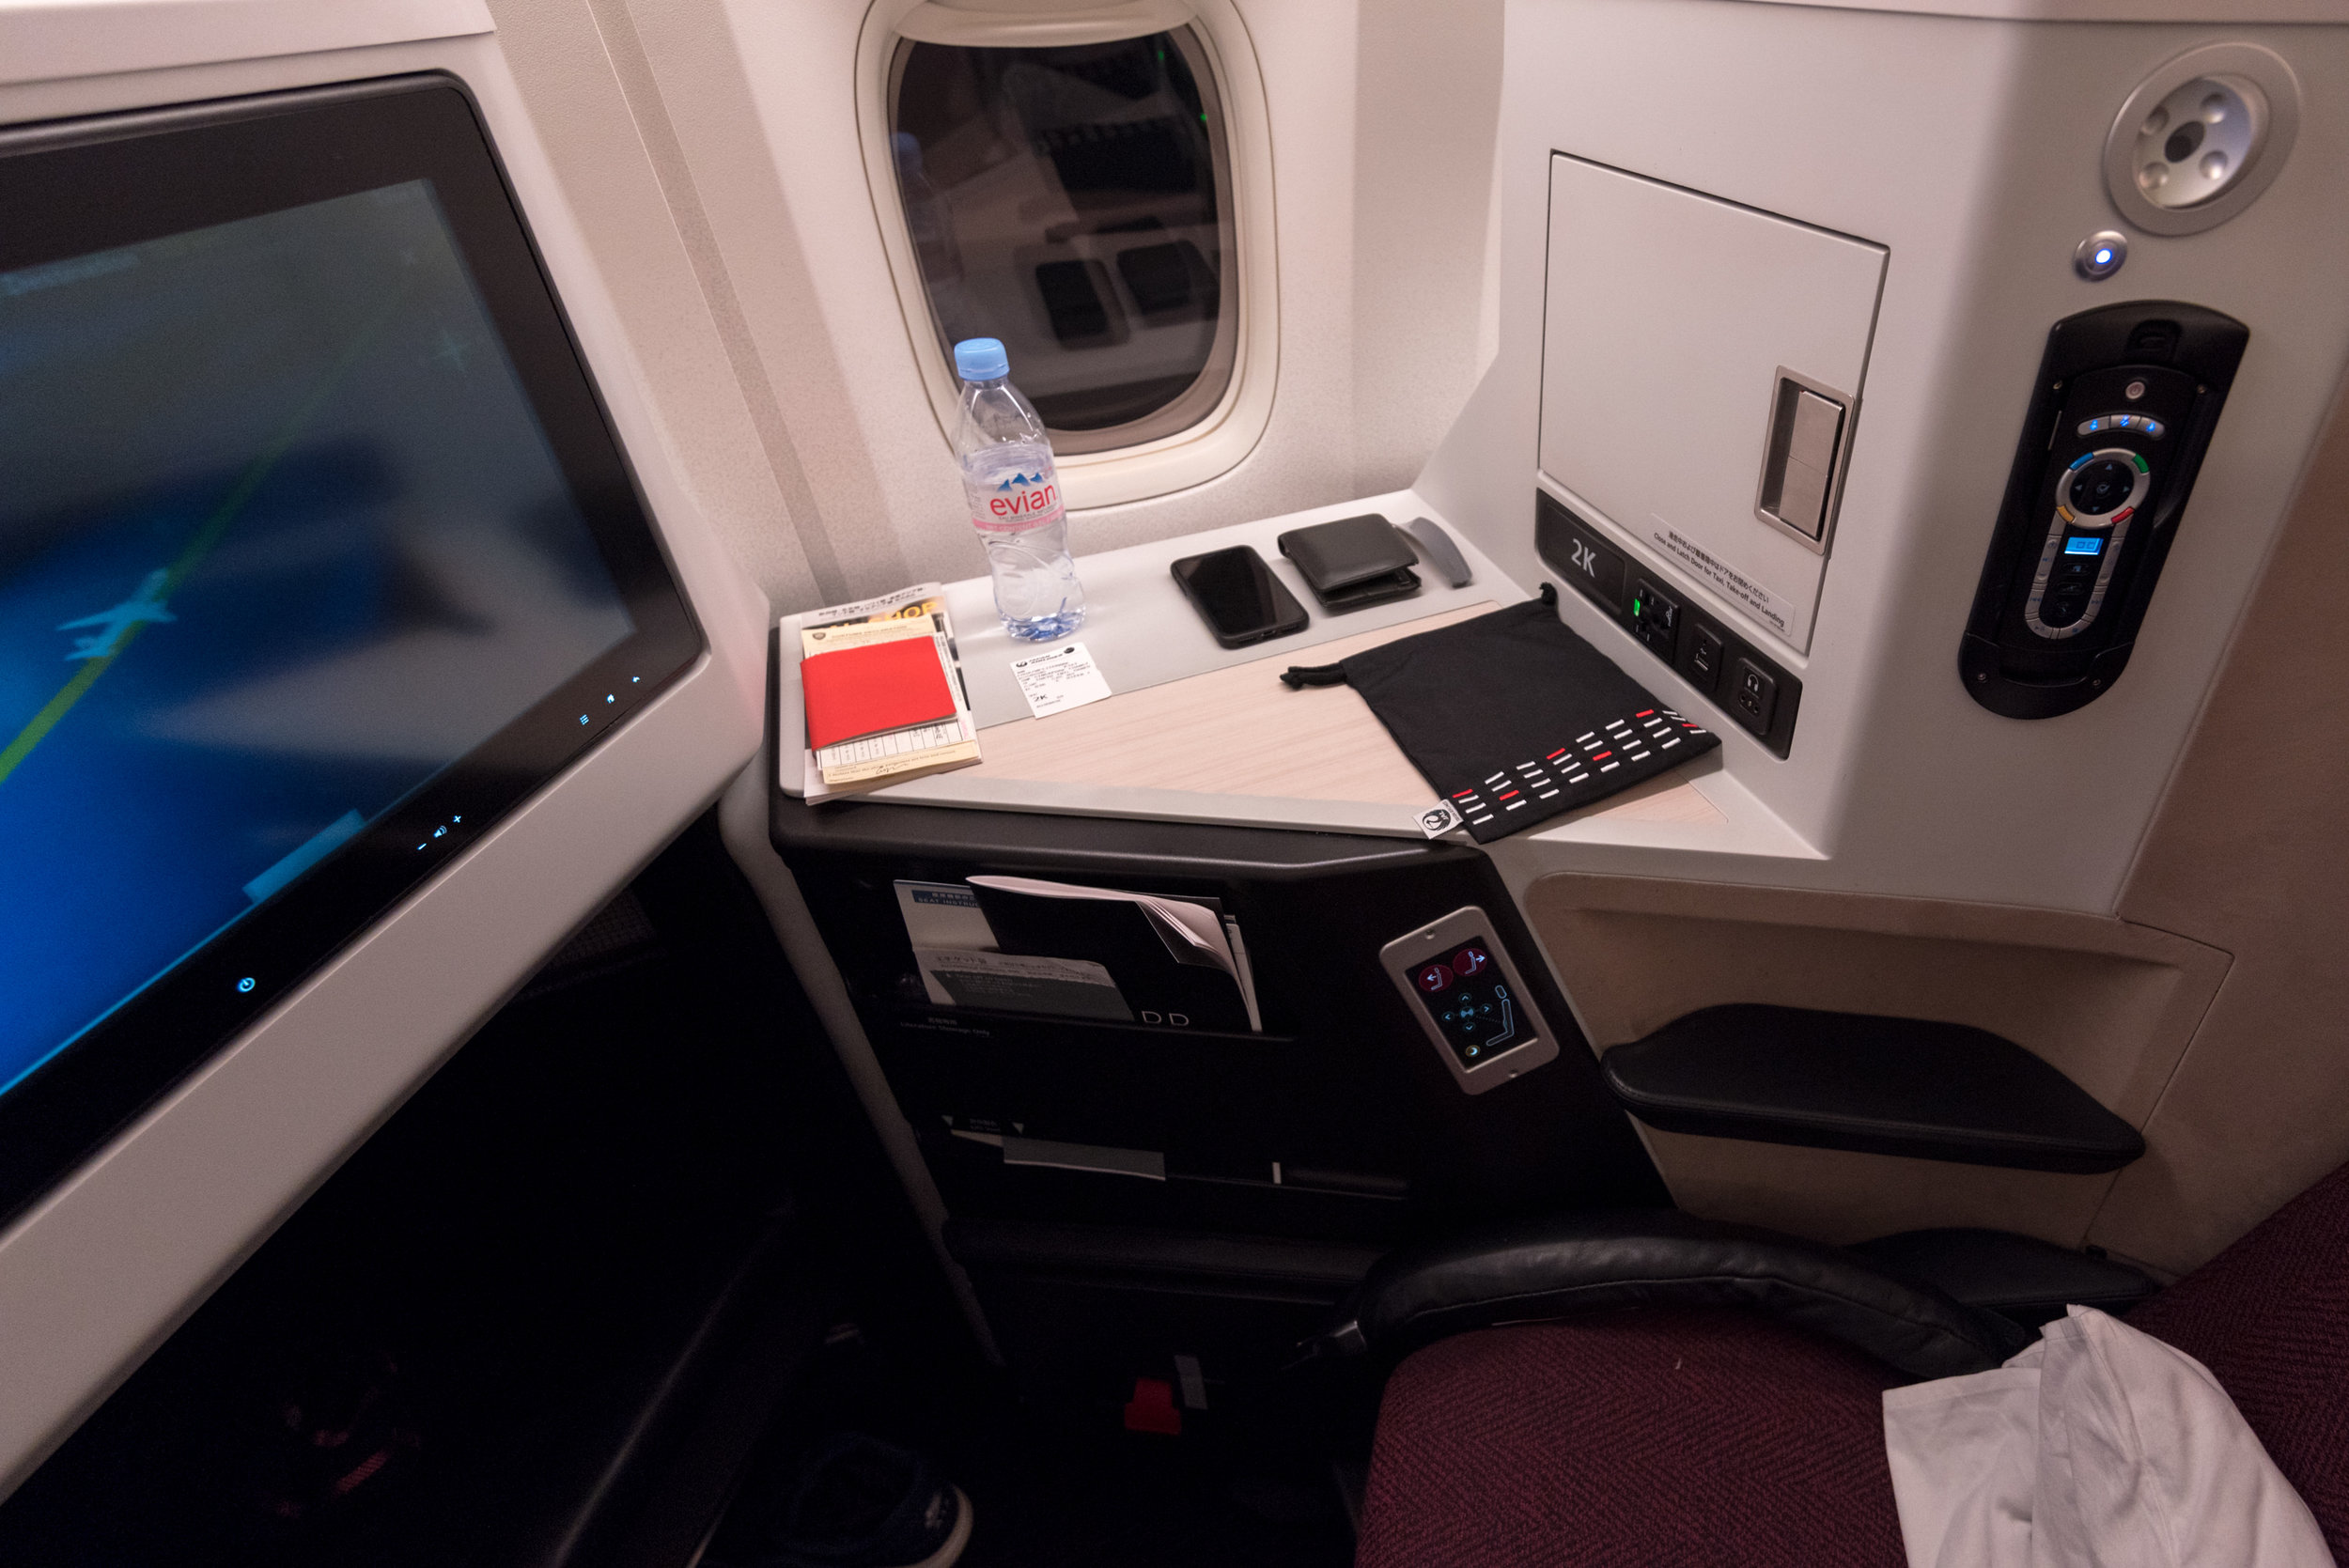 Seat 2K  Japan Airlines Business Class JL36 777-200ER - SIN to HND